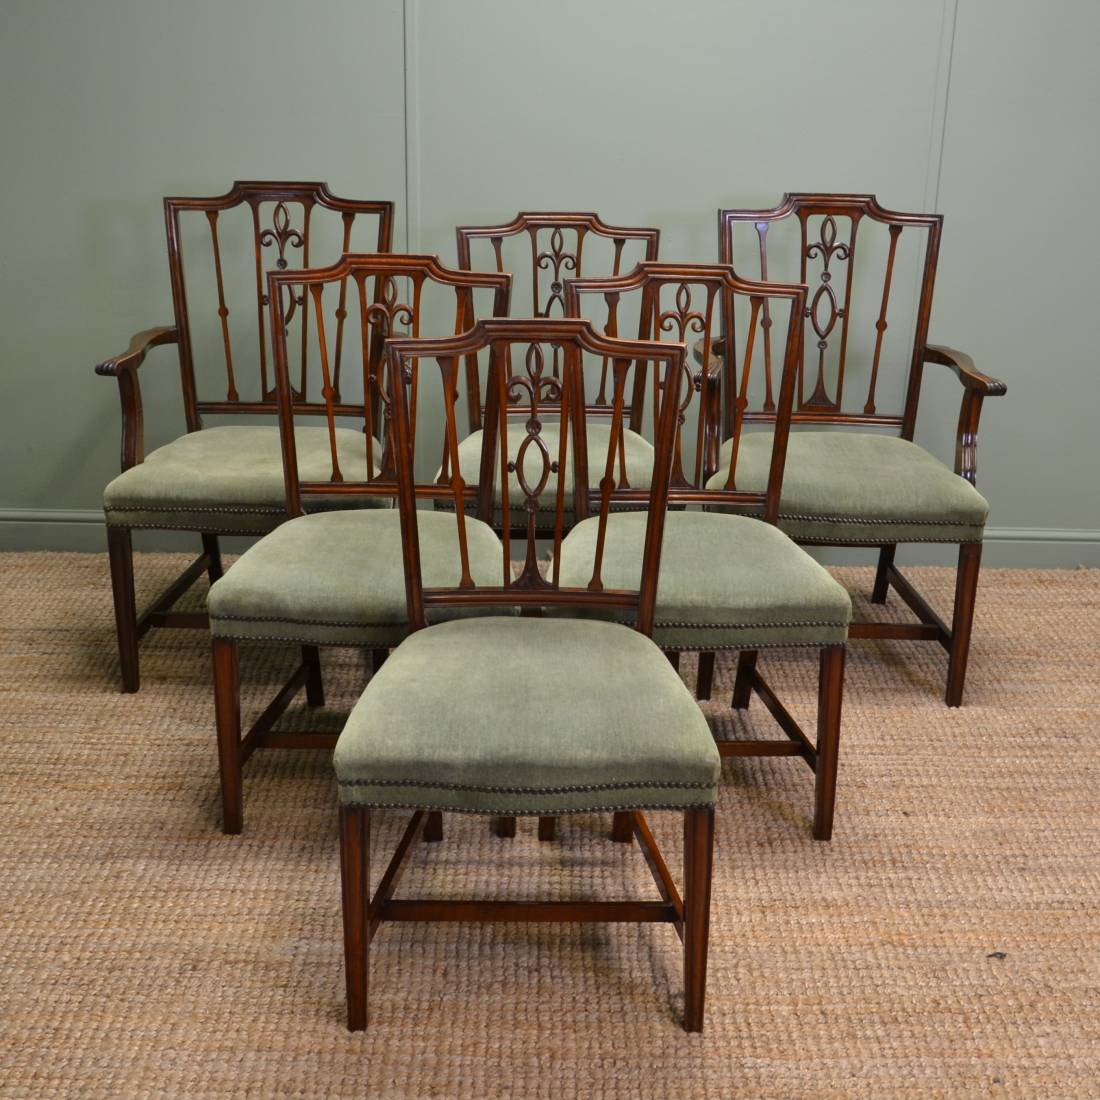 Antique Mahogany Dining Room Furniture: Set Of Six Edwardian Mahogany Antique Dining Chairs